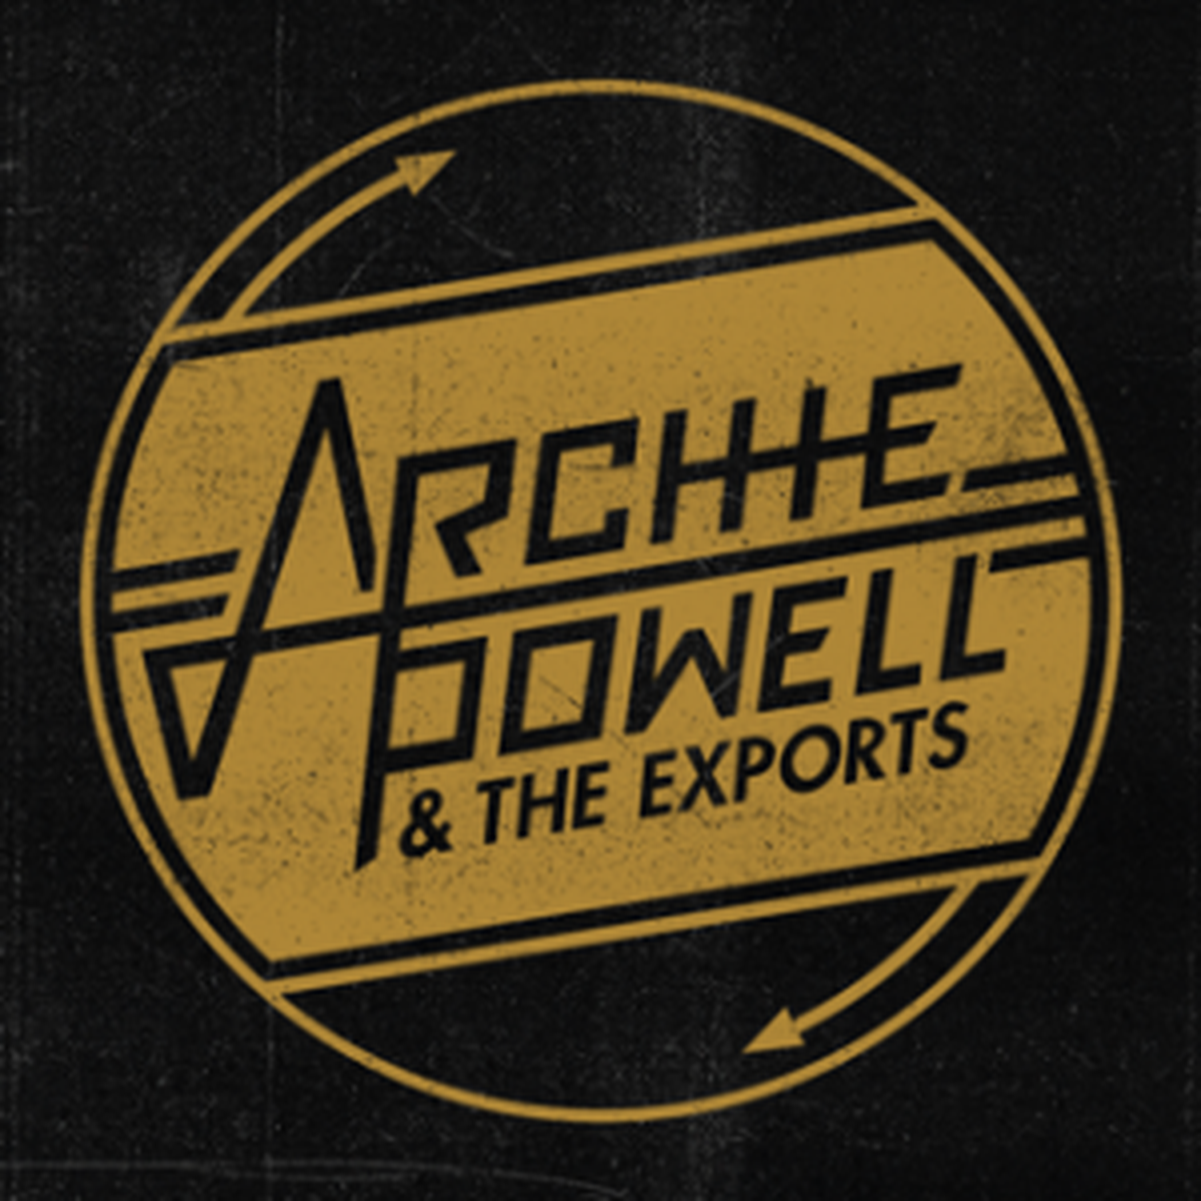 Archie Powell & The Exports, LLC